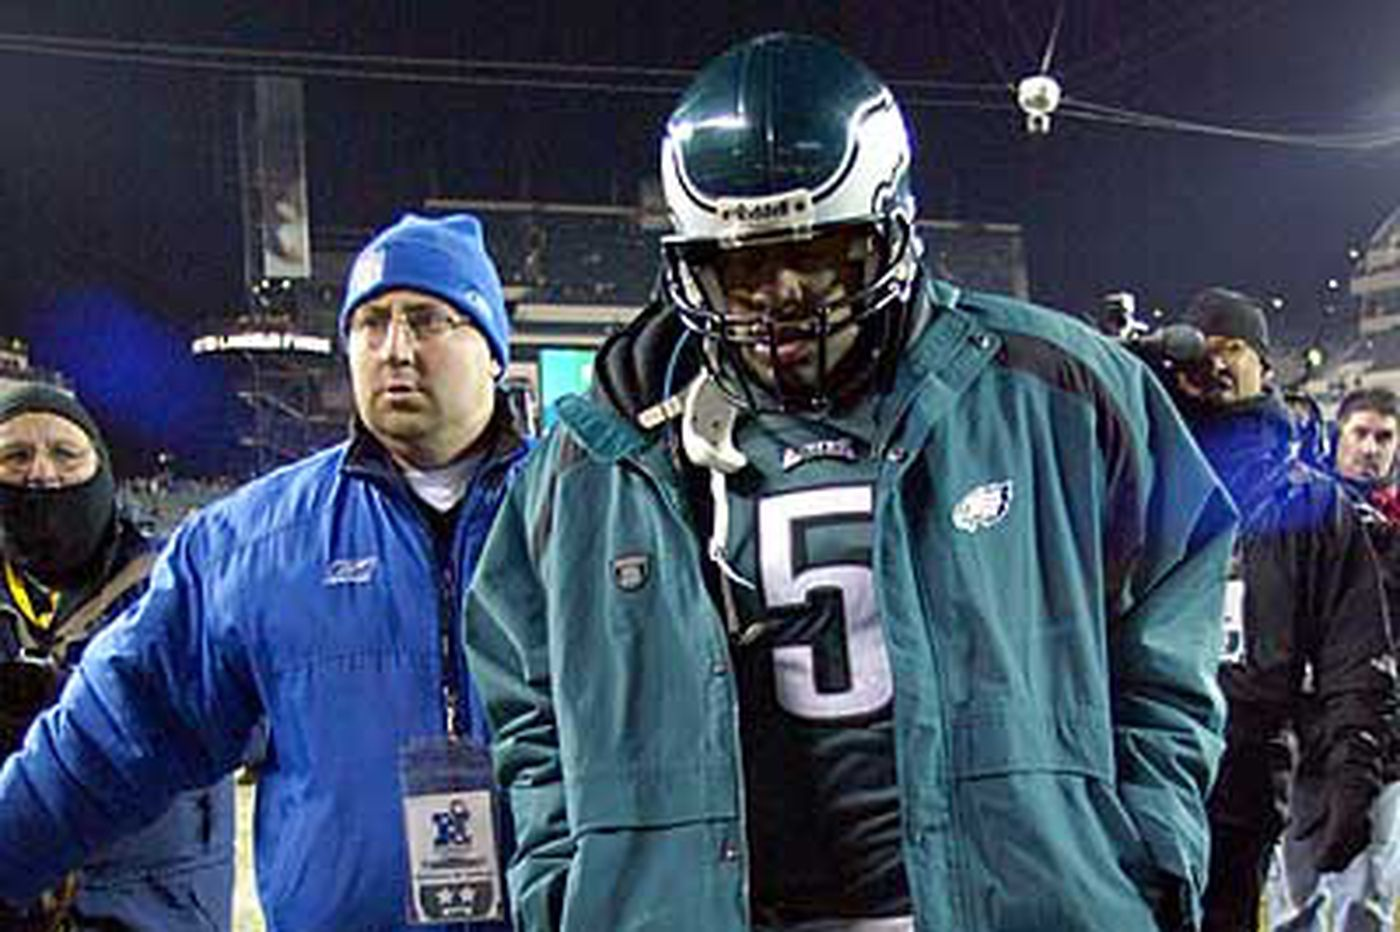 Sports in Brief: McNabb: 'I belong in Hall'